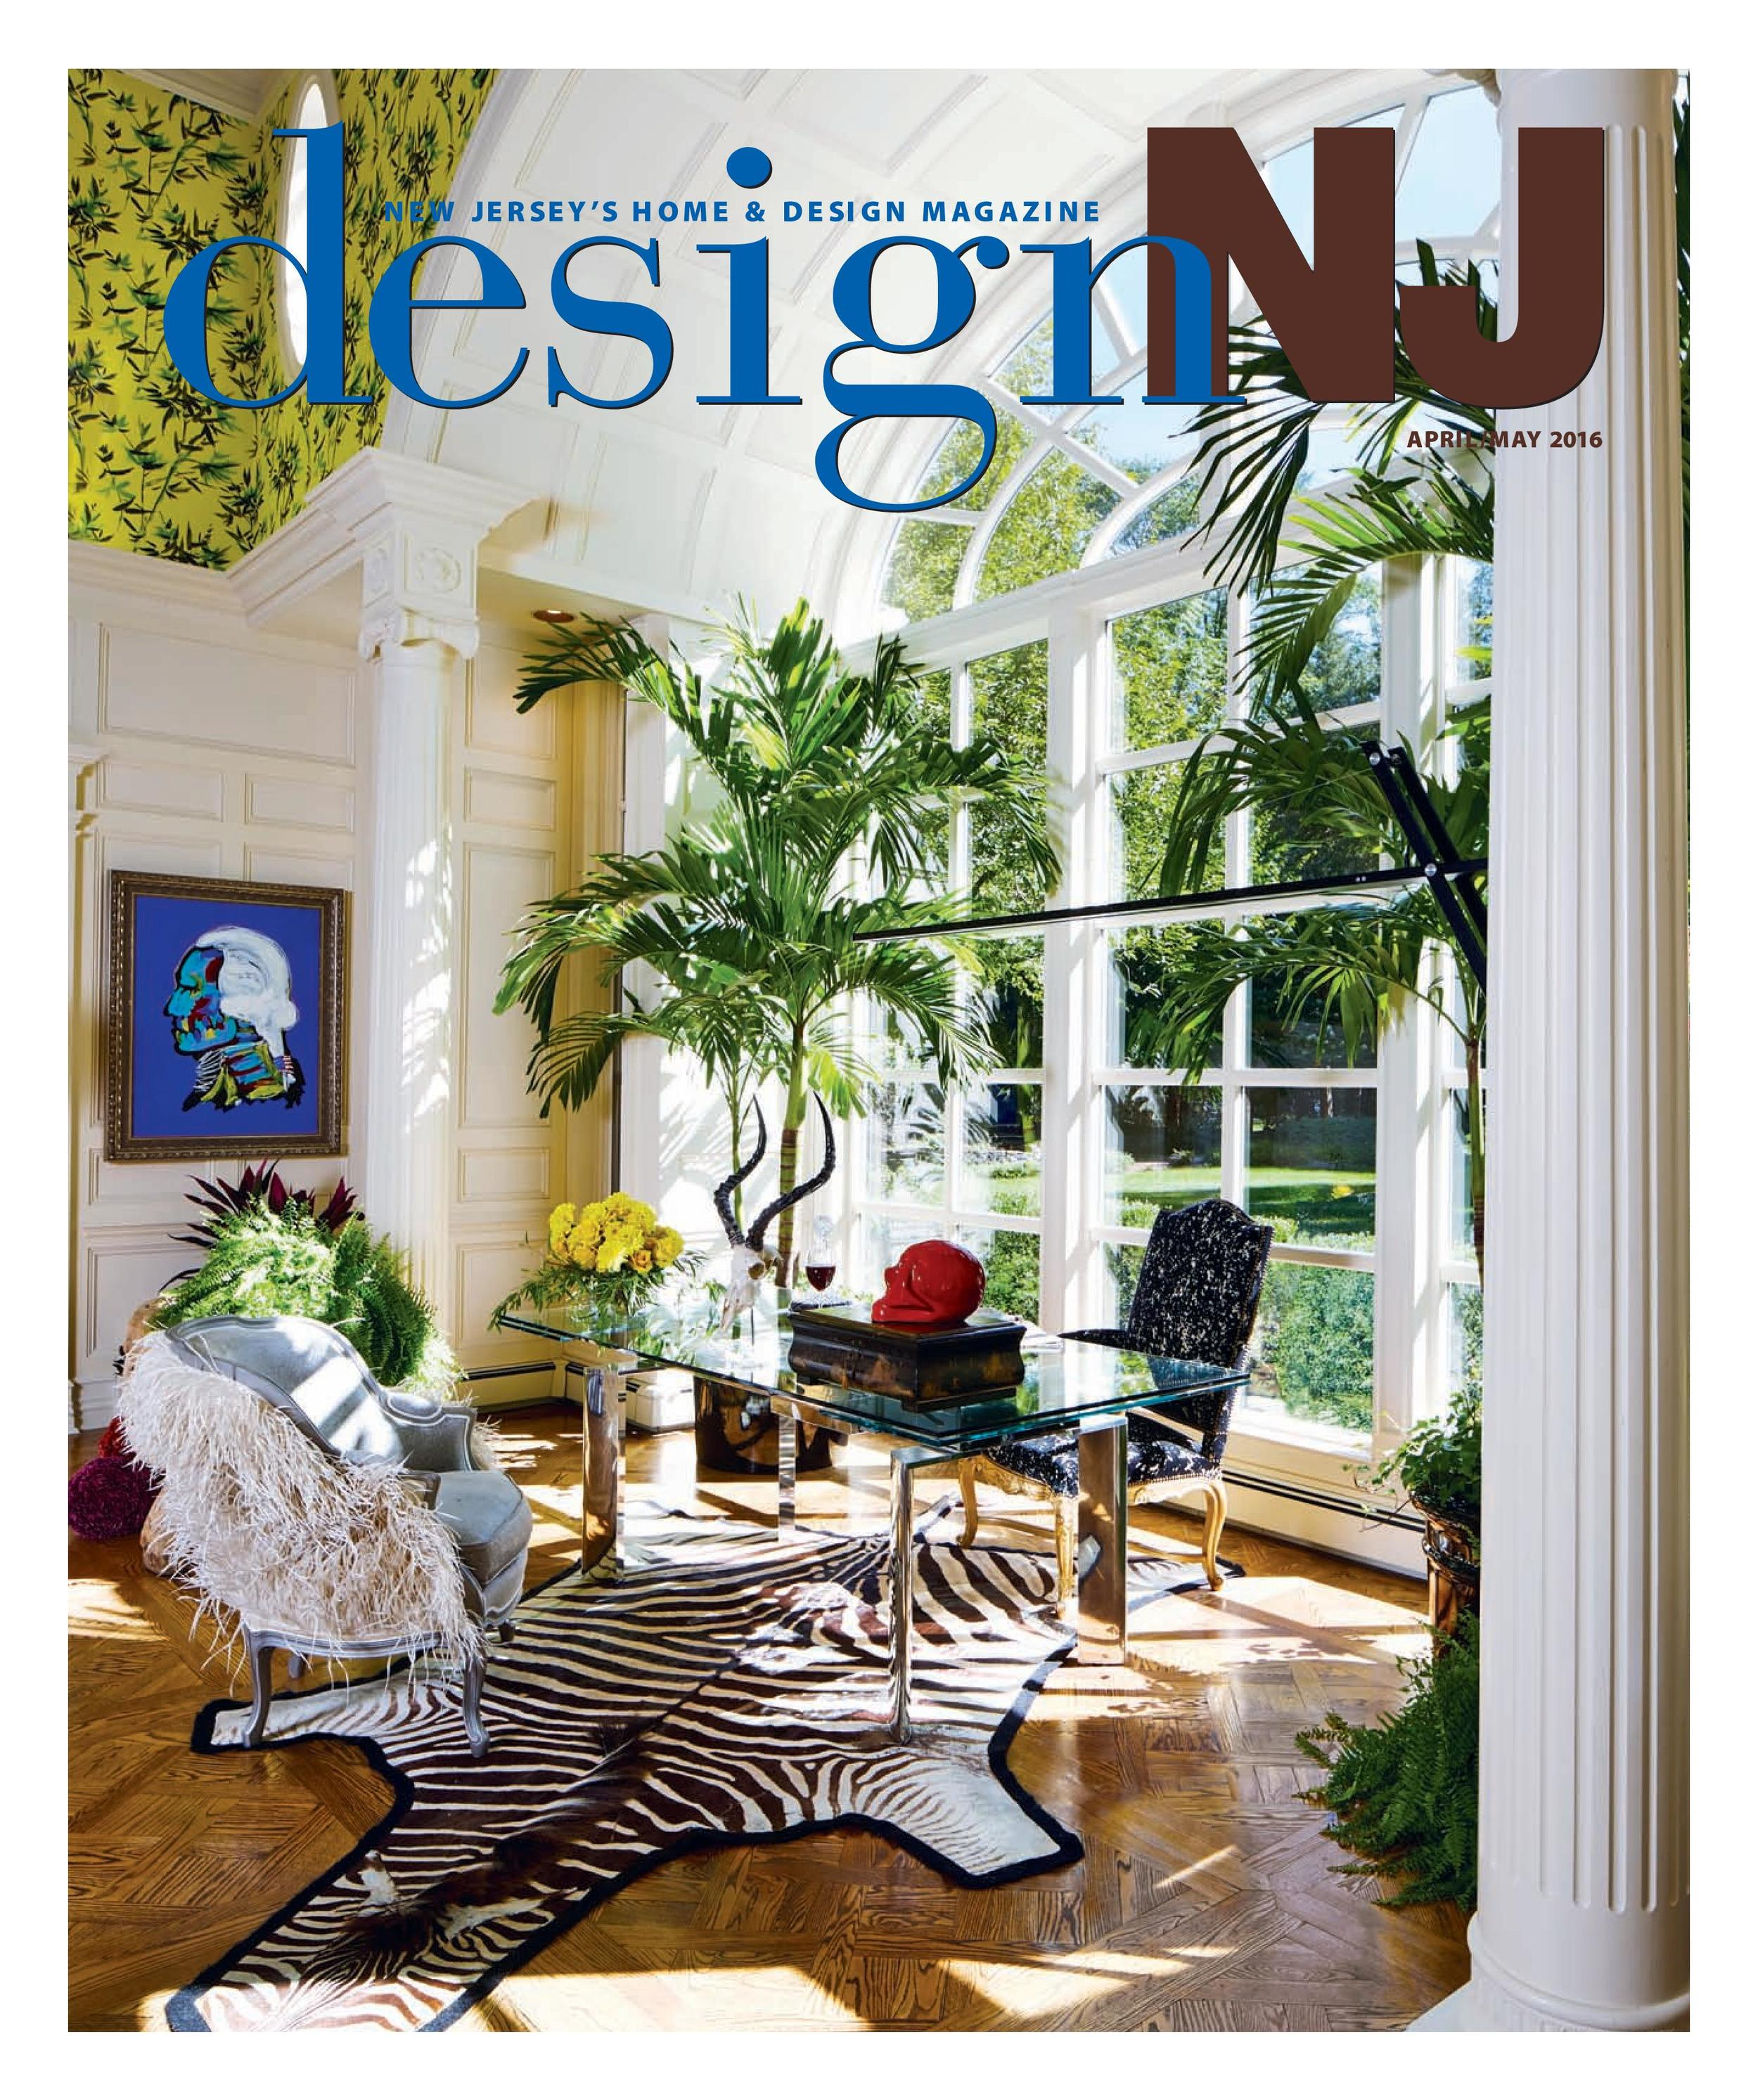 DesignNJ_April_May2016Cover-page-001 (1).jpg